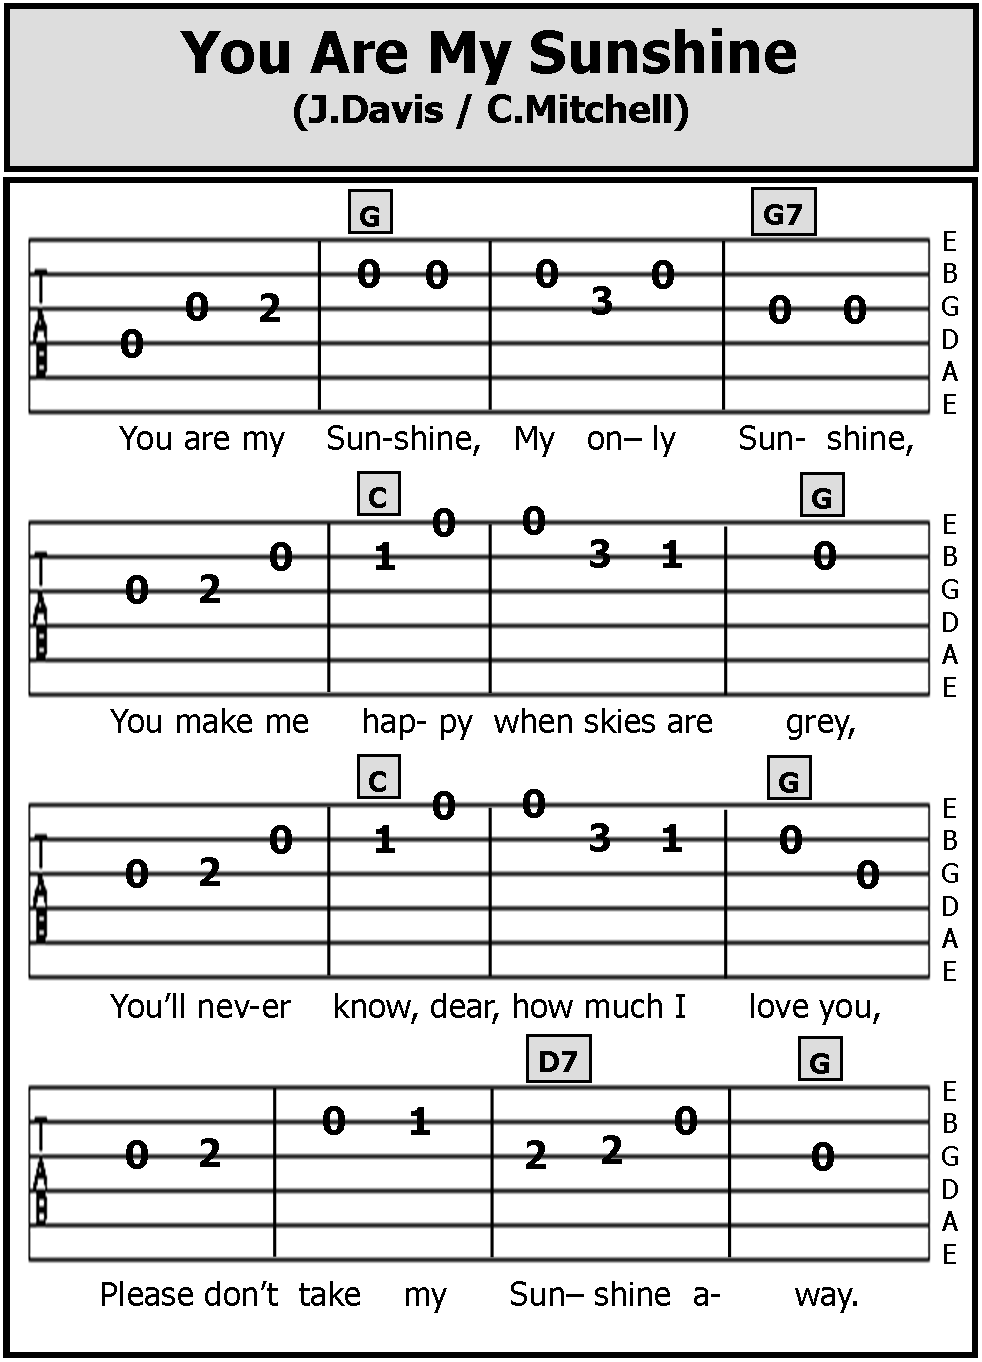 http://www.guitarnick.com/images/you-are-the-sunshine-of-my-life-guitar-tablature1.png